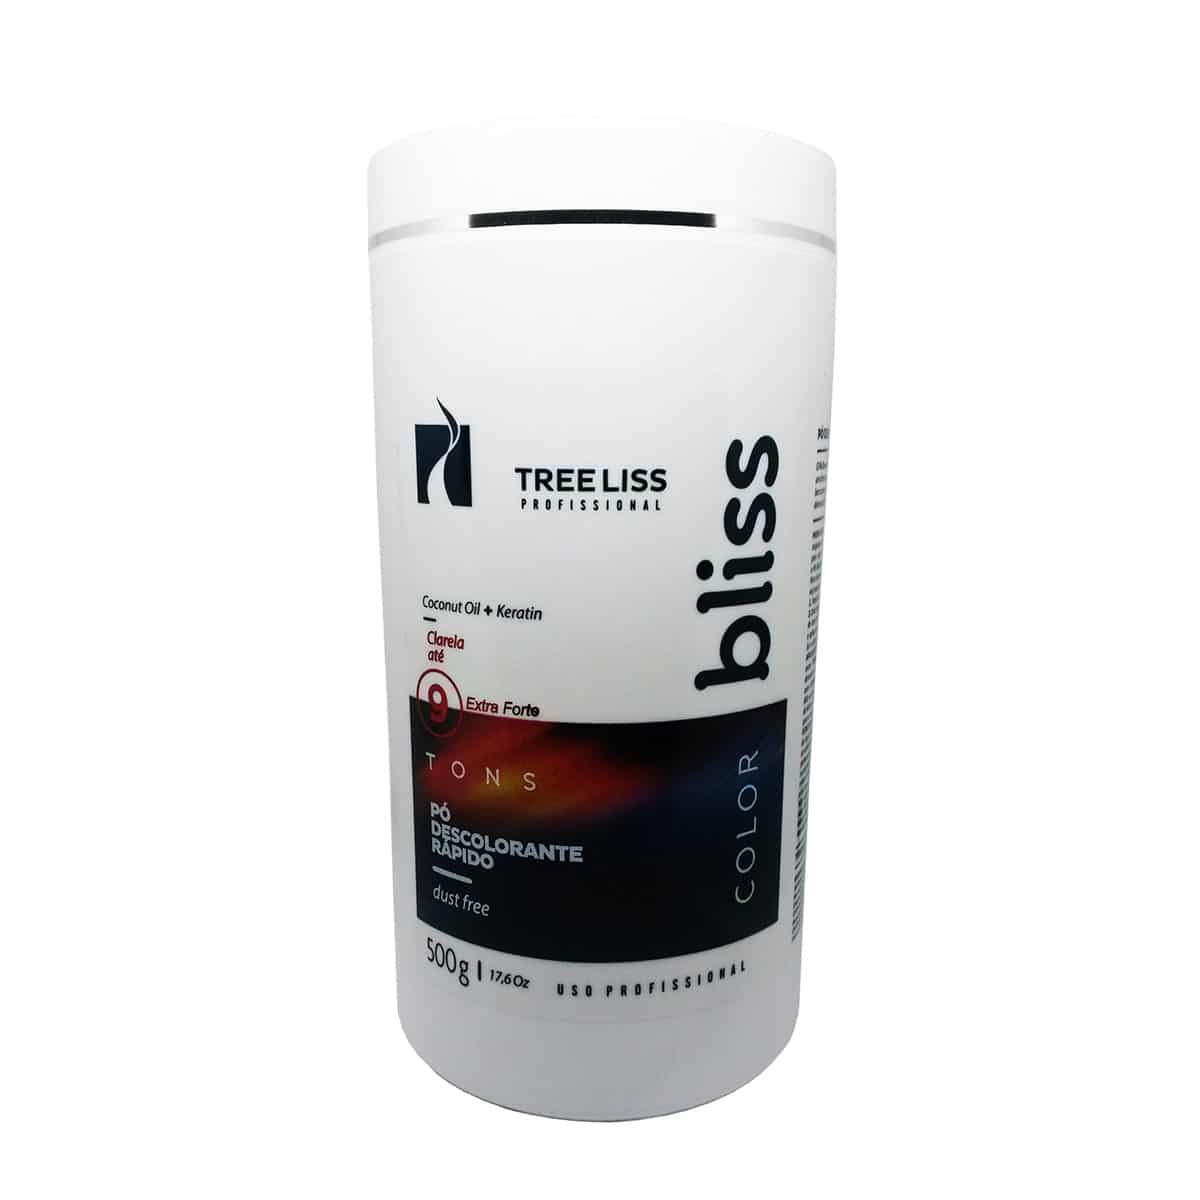 Color Bliss 500g  - Tree Liss